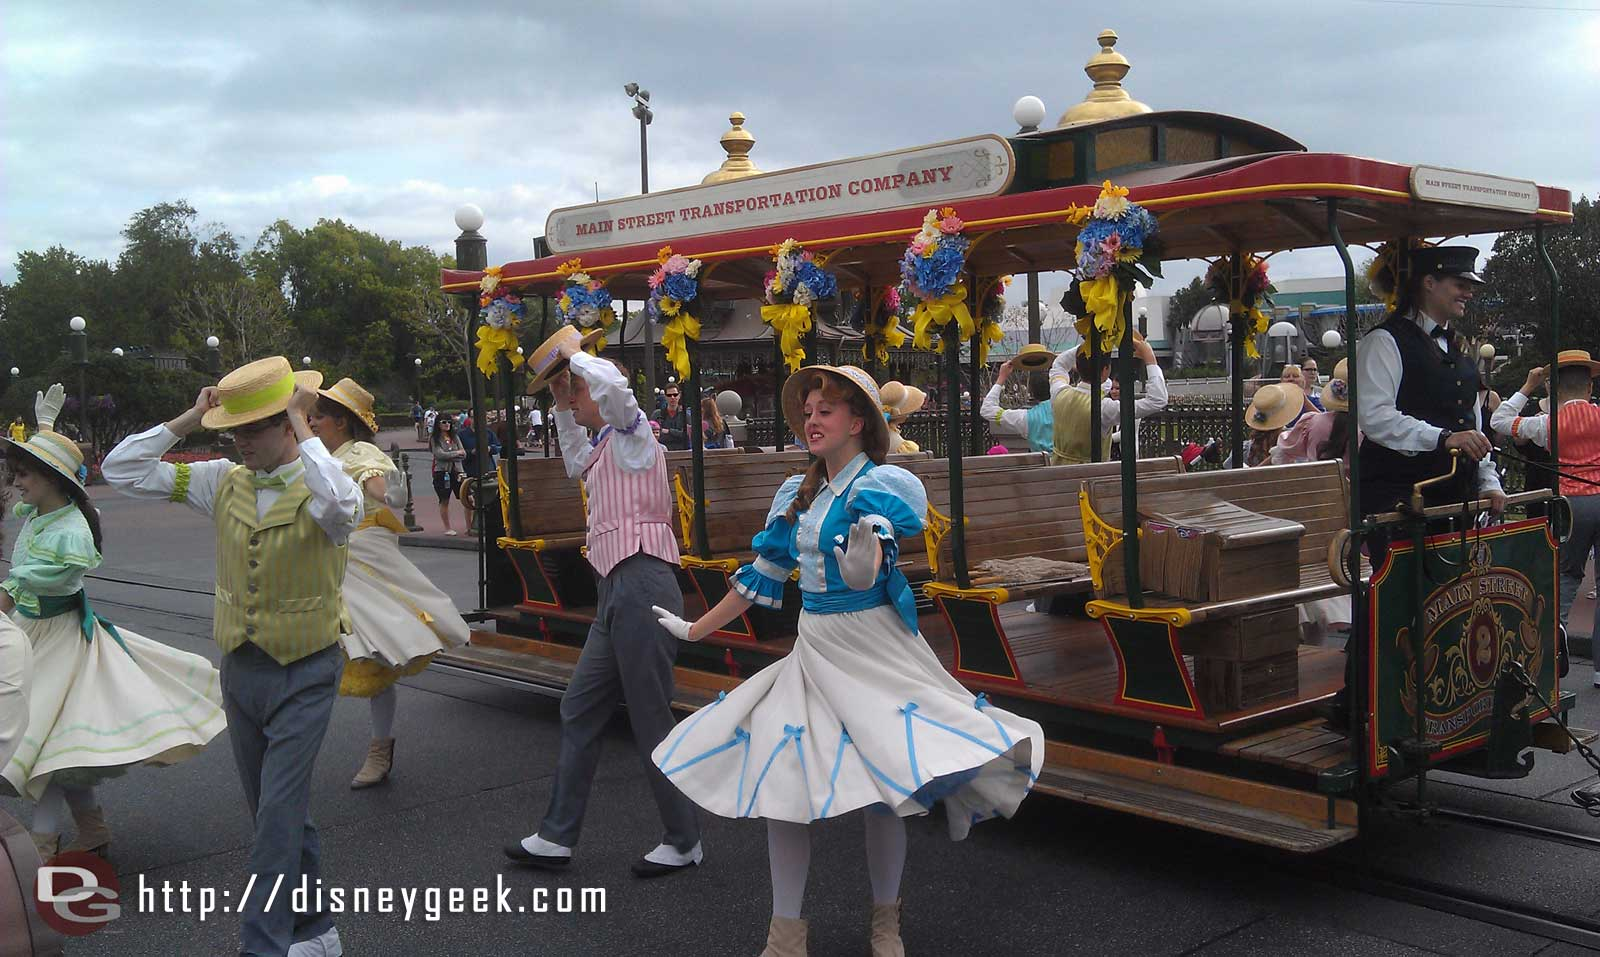 Spring Main Street Trolley Show, #LimitedTimeMagic if I remember correctly